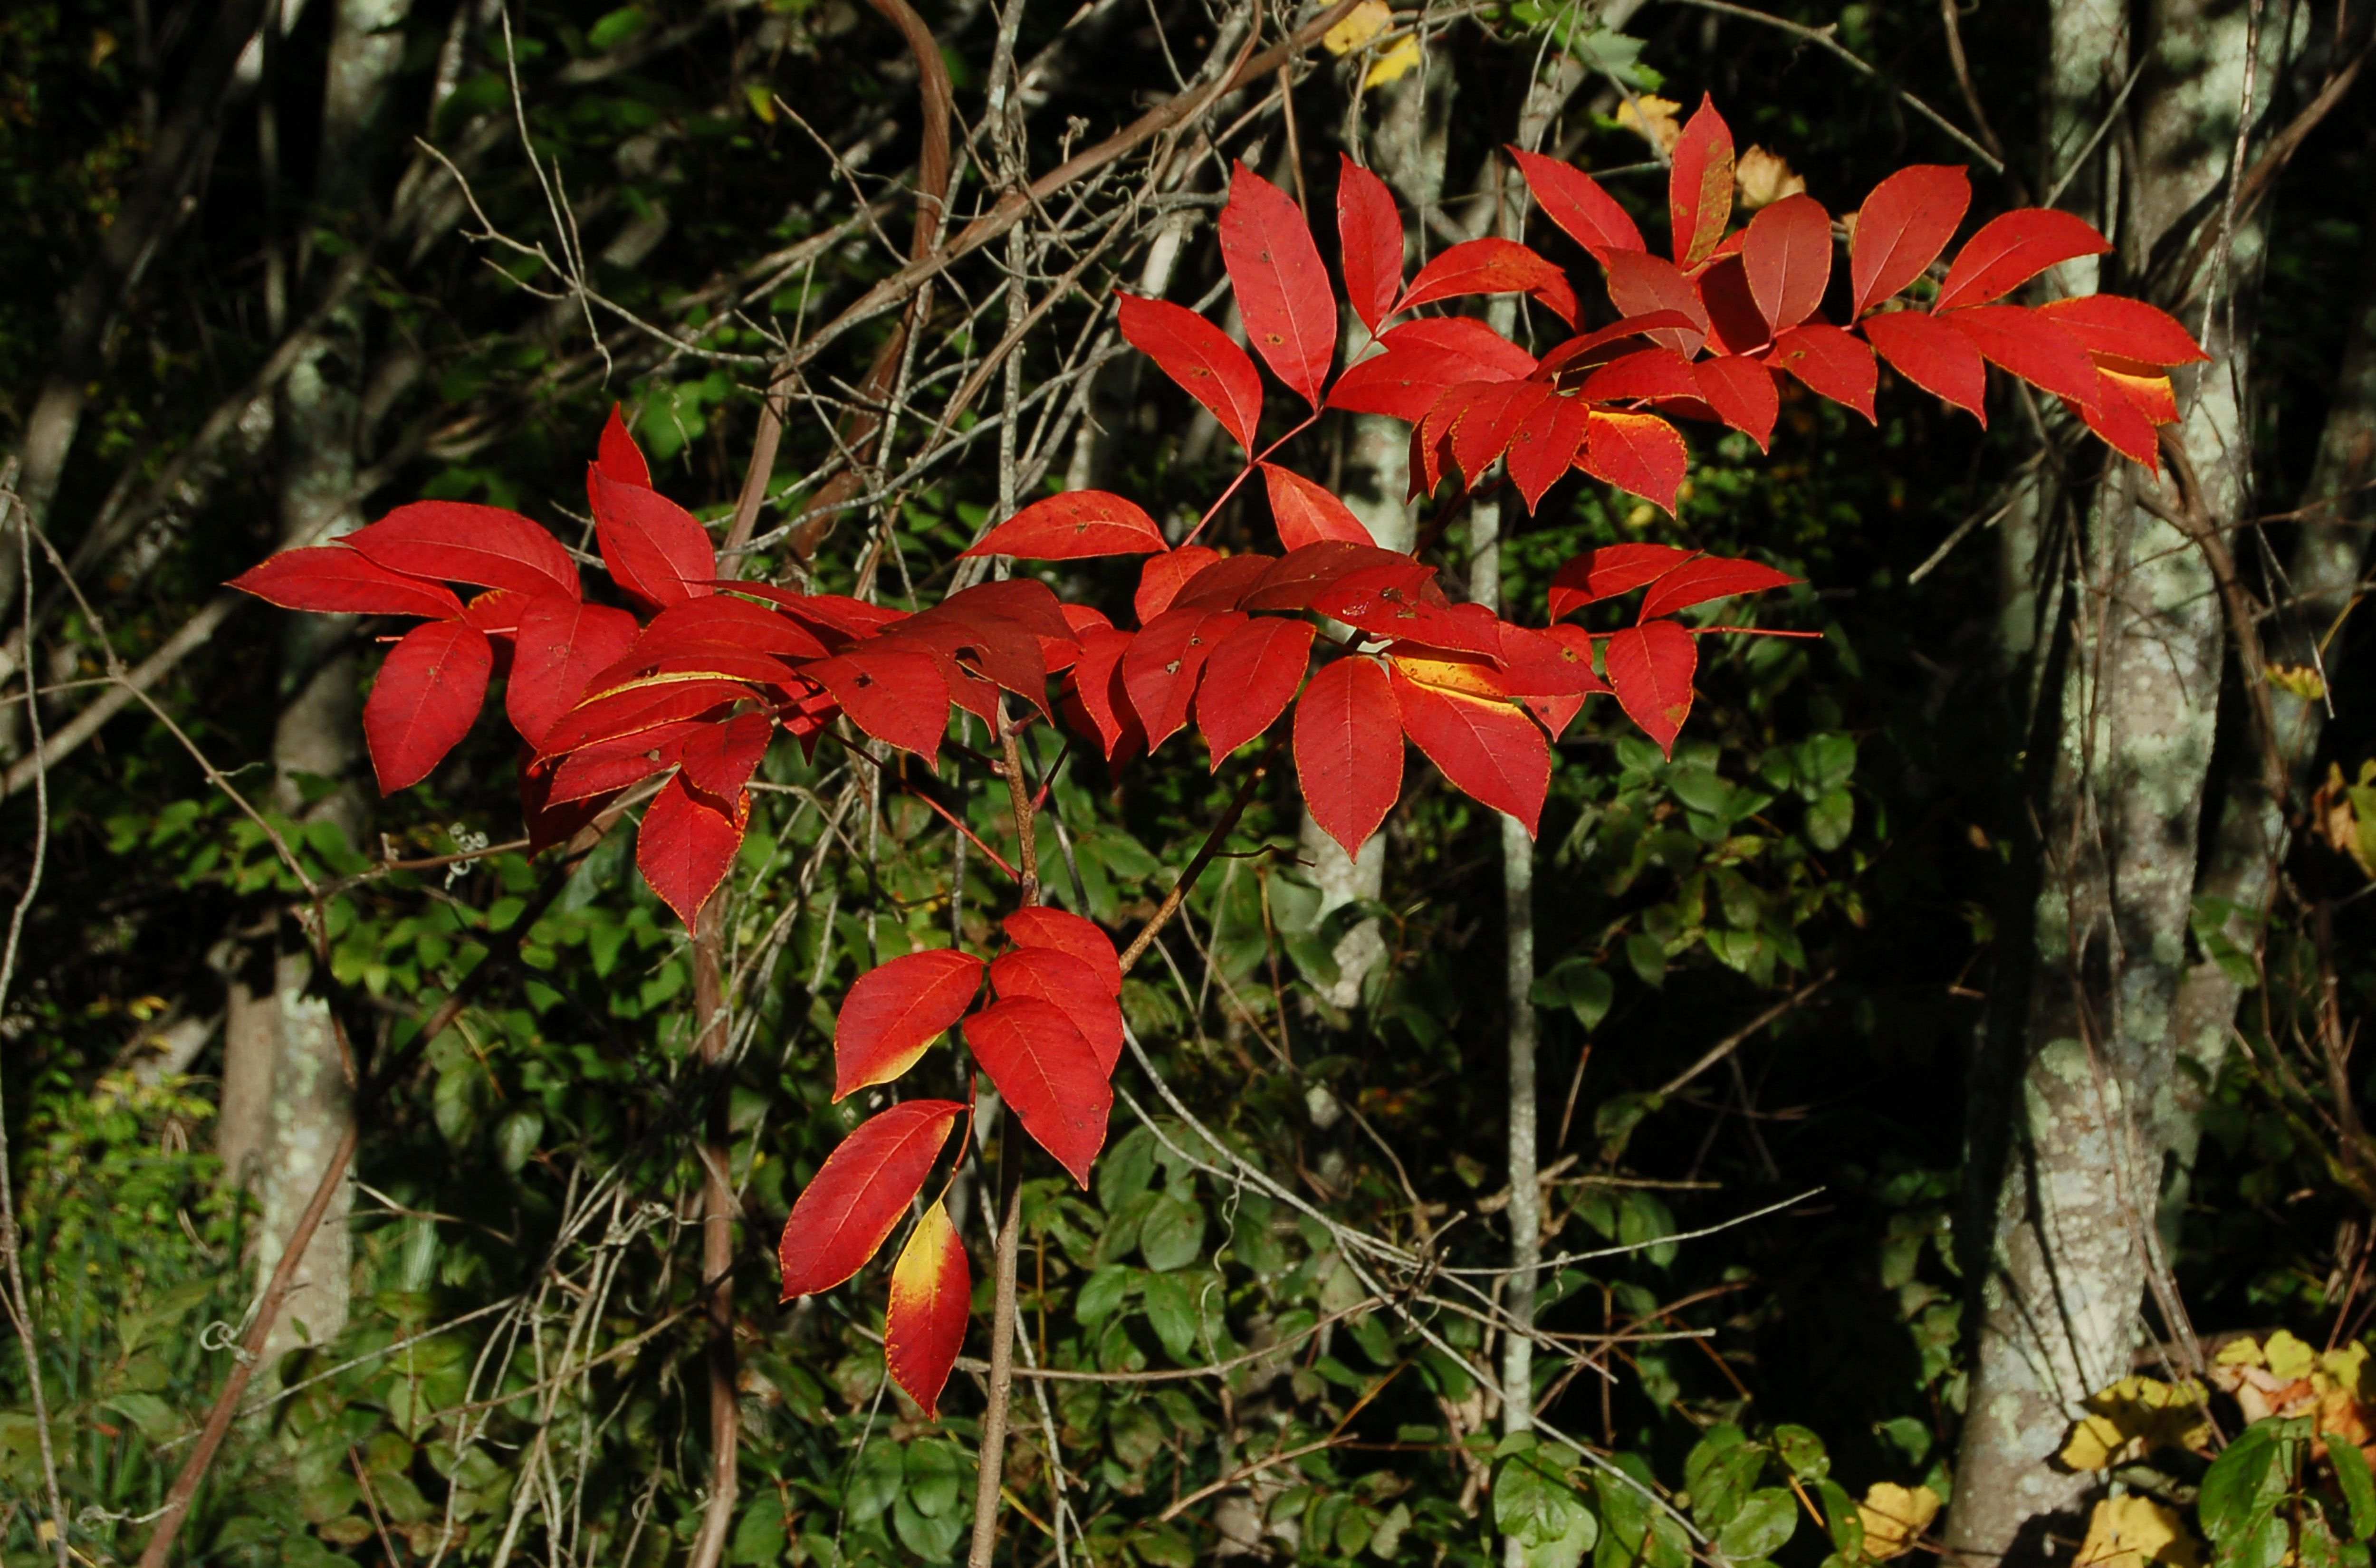 Poison sumac's fall foliage in red.